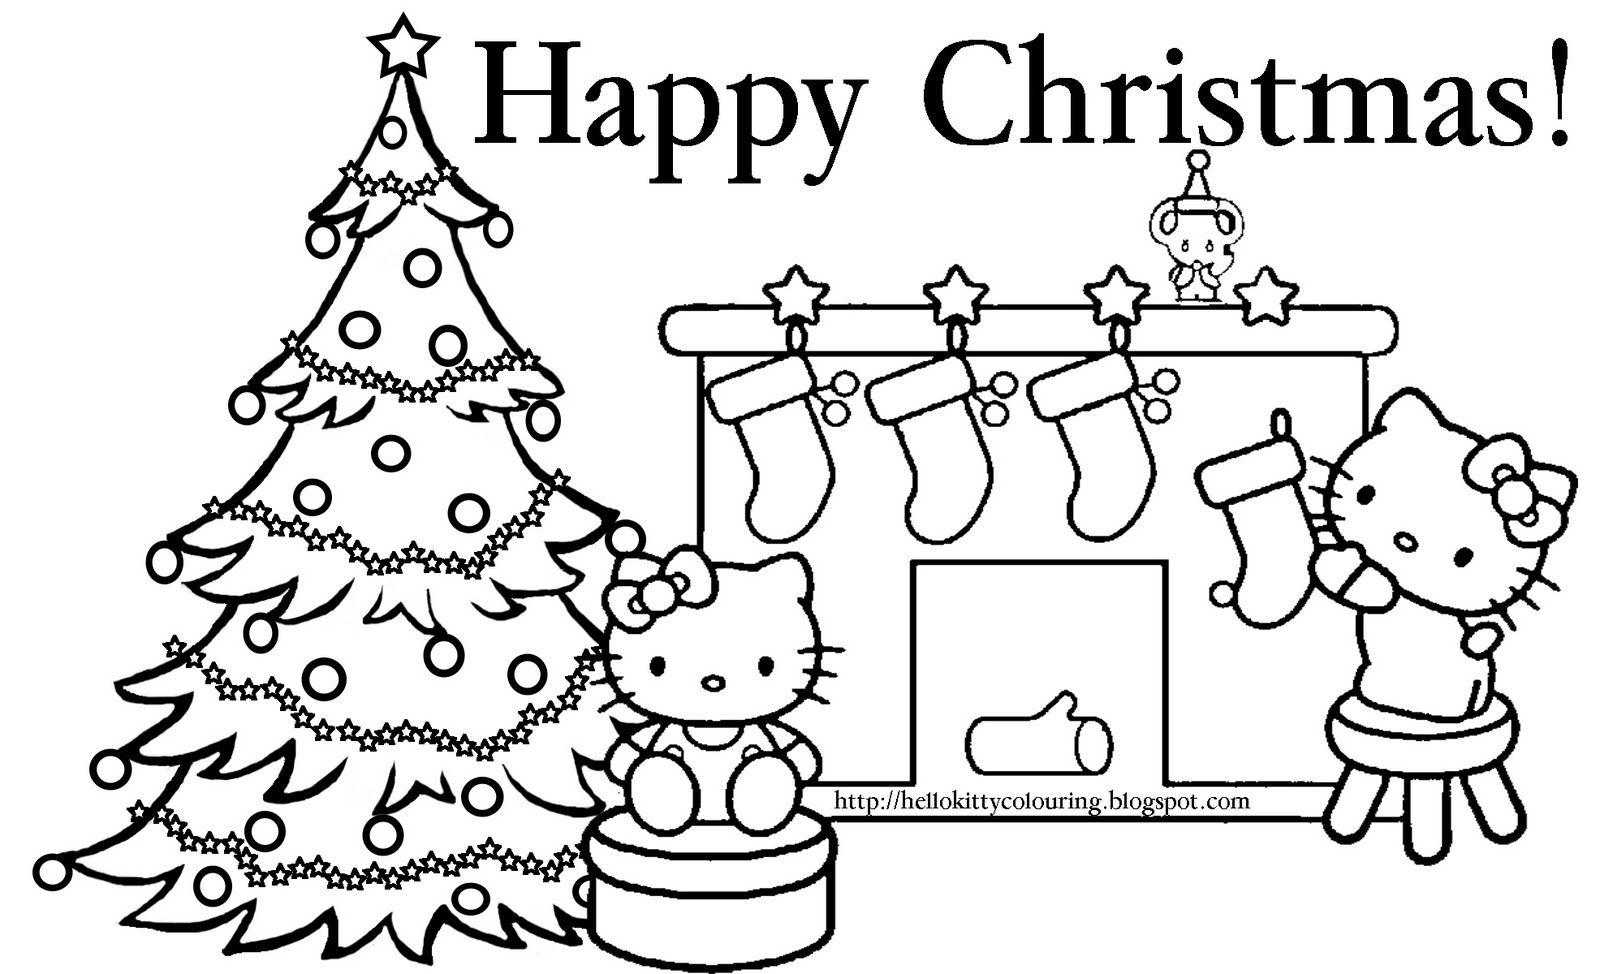 Hello Kitty Coloring Pages Hello Kitty Colouring Pages Hello Kitty Coloring Printable Christmas Coloring Pages